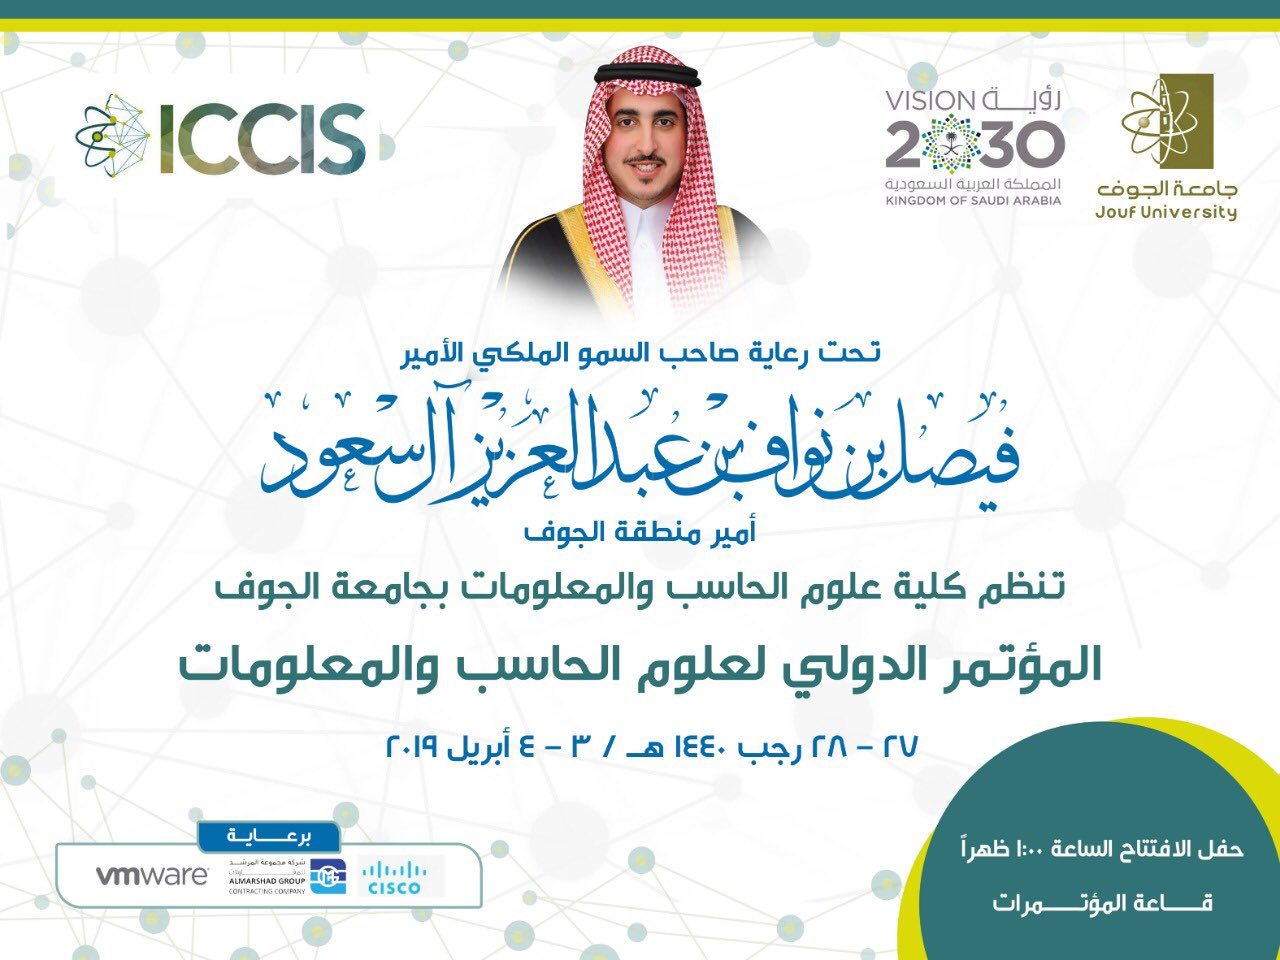 Under the patronage of HRH Prince Faysal Bin Nawaf, prince of Al-Jouf Region, the College of Computer and Information Sciences at Jouf University organizes the International Conference on Computer and Information Sciences